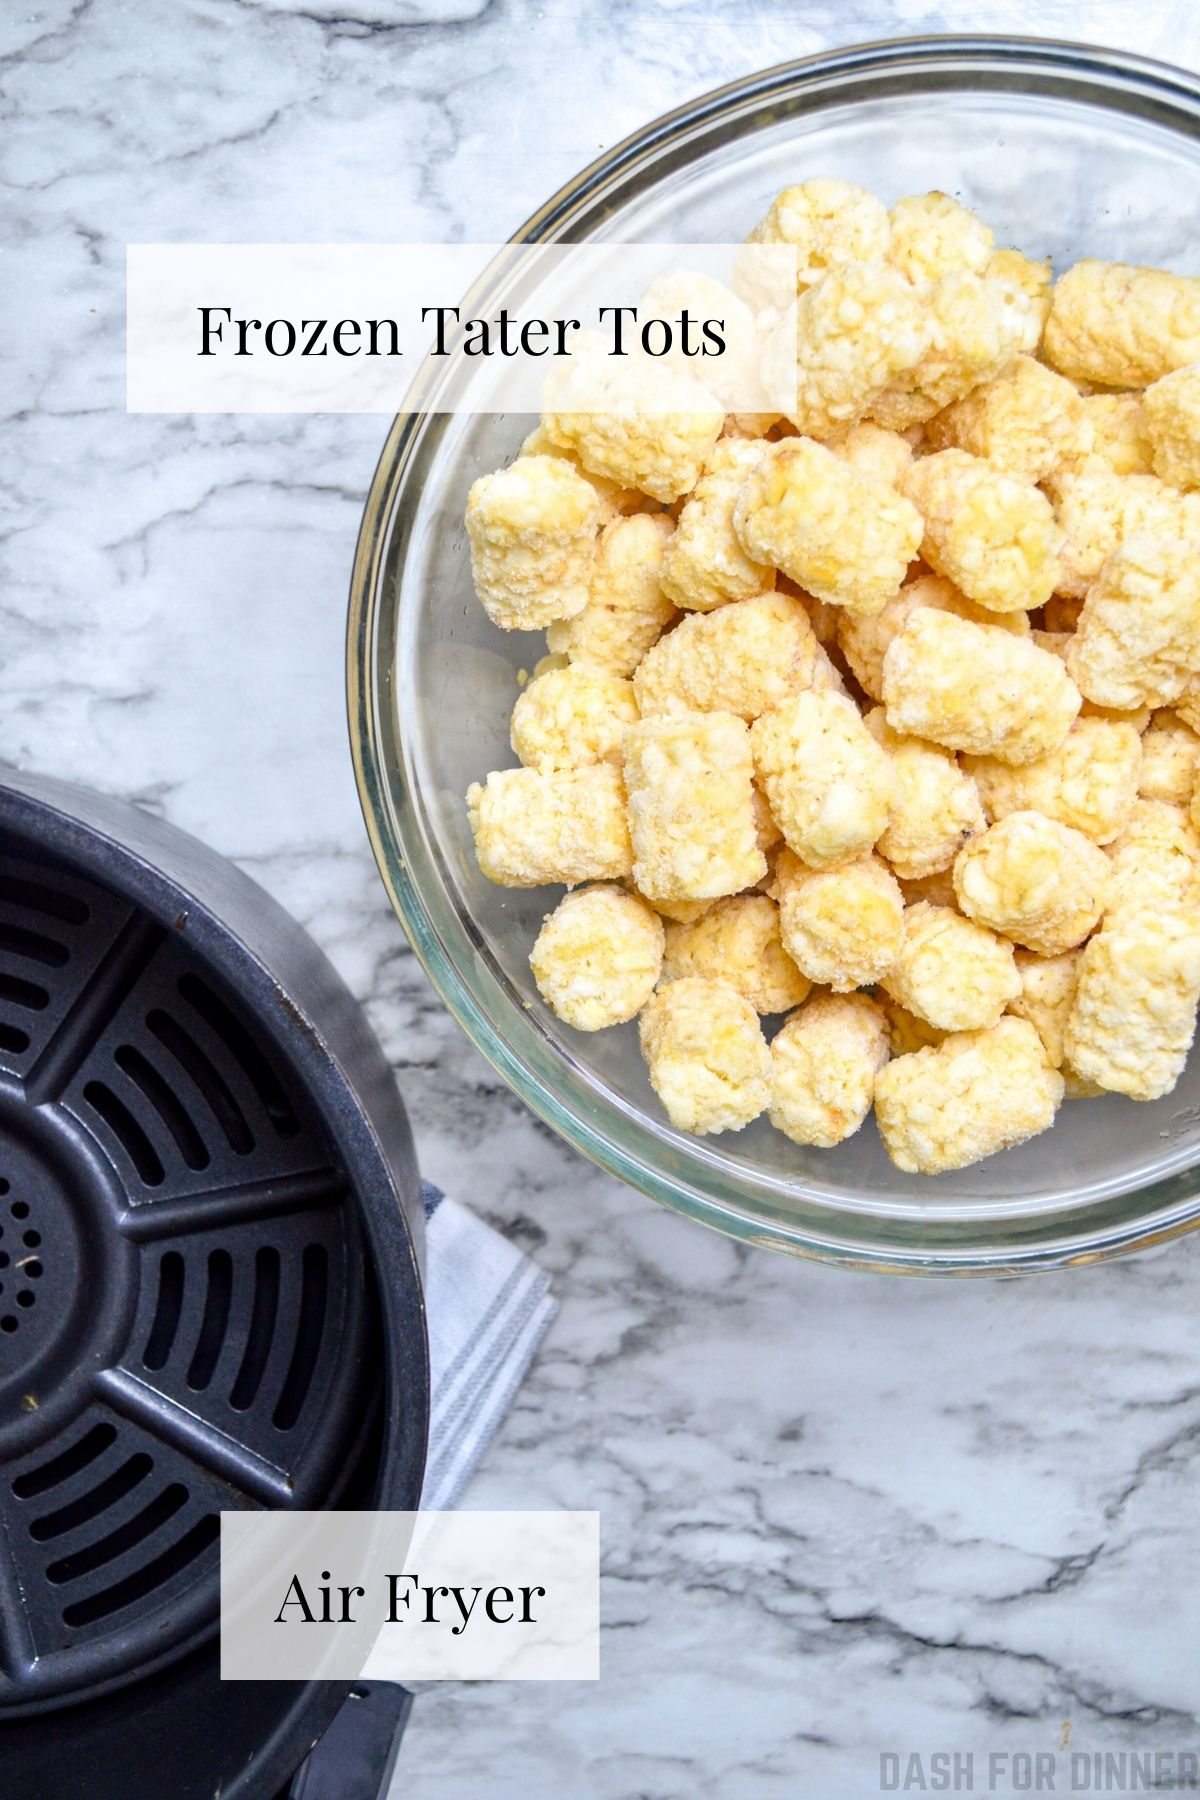 The ingredients needed to make tater tots in the air fryer: tater tots, and an air fryer!